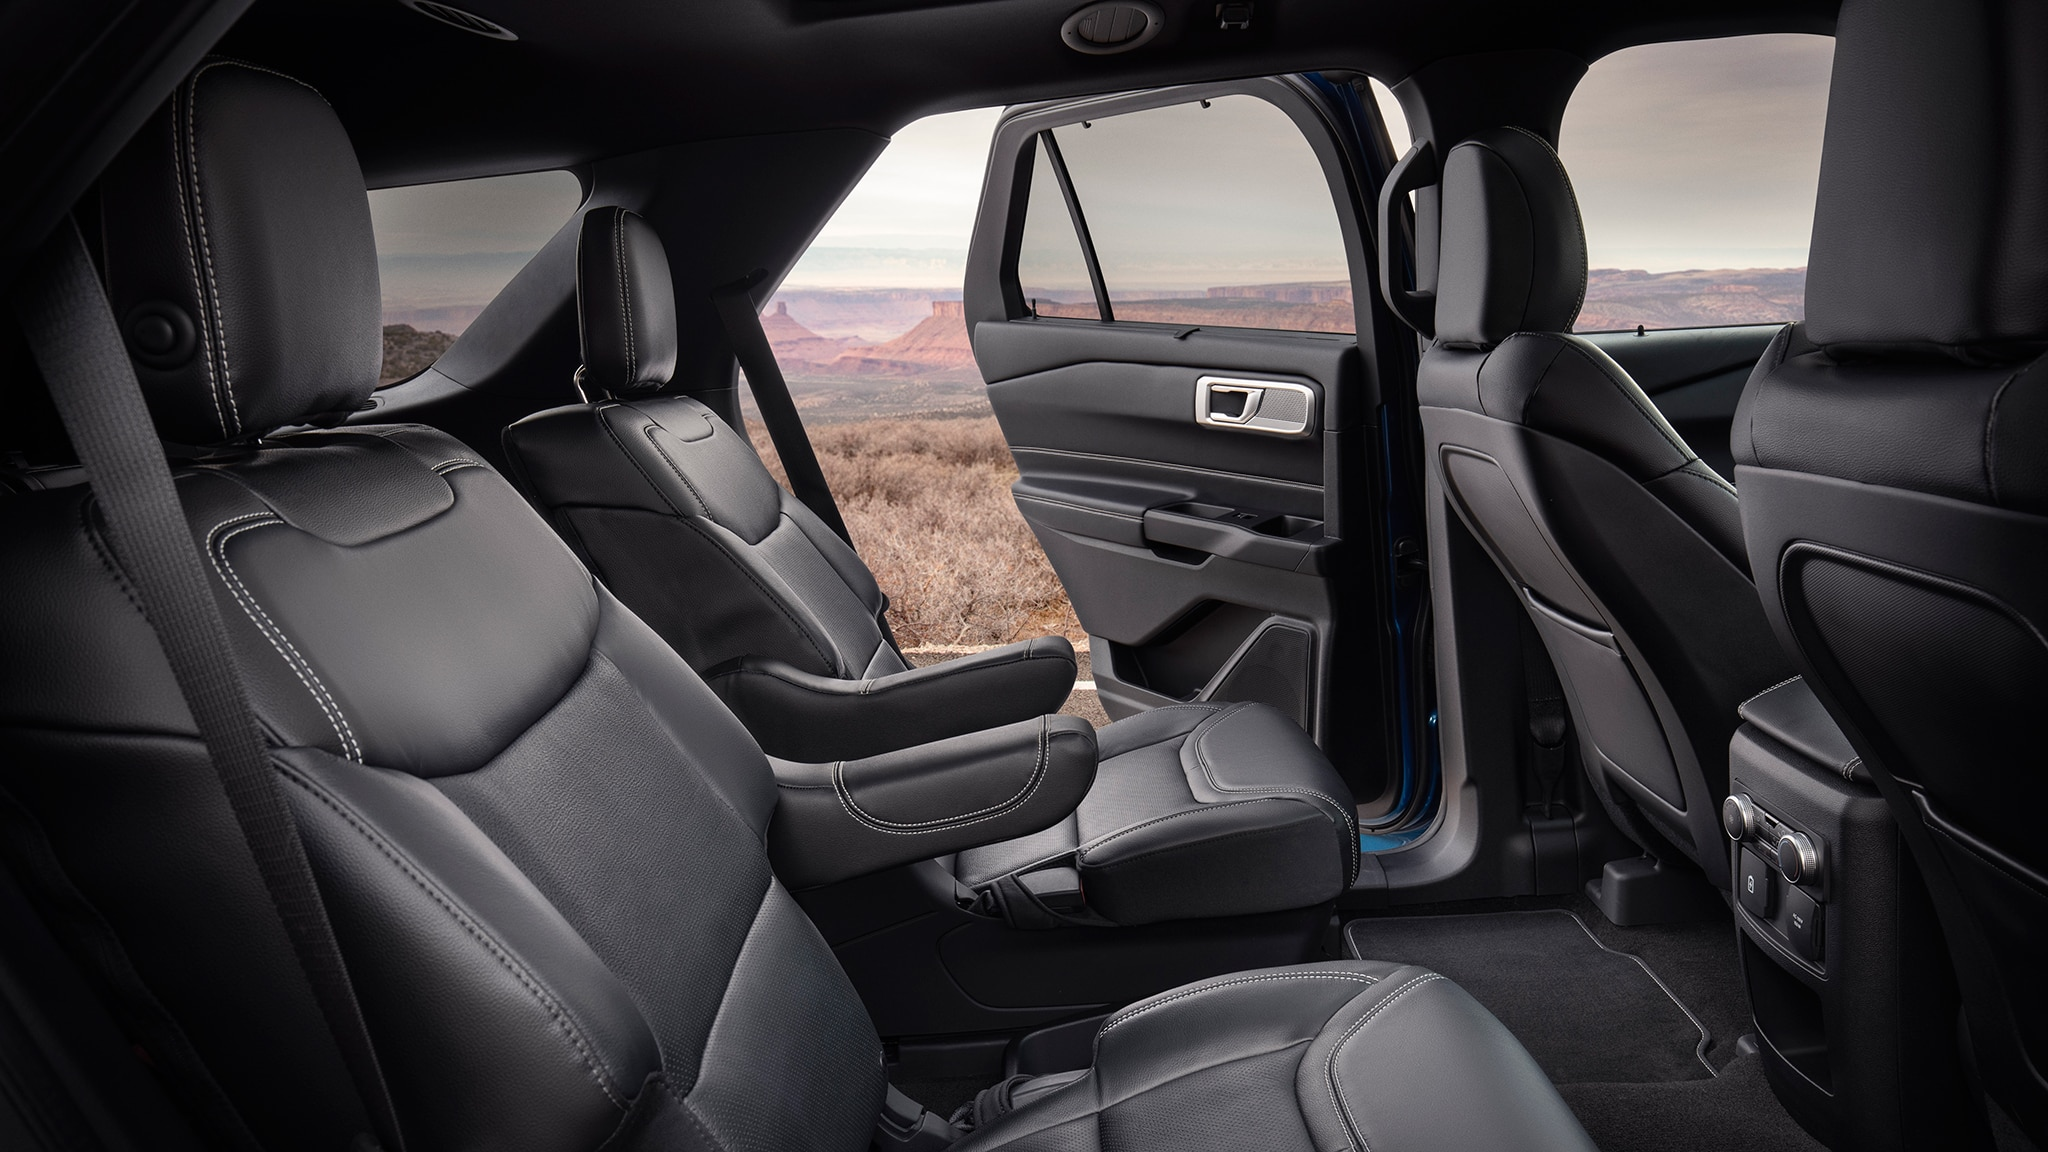 2020 Ford Explorer Photos And Details What You Need To Know Car